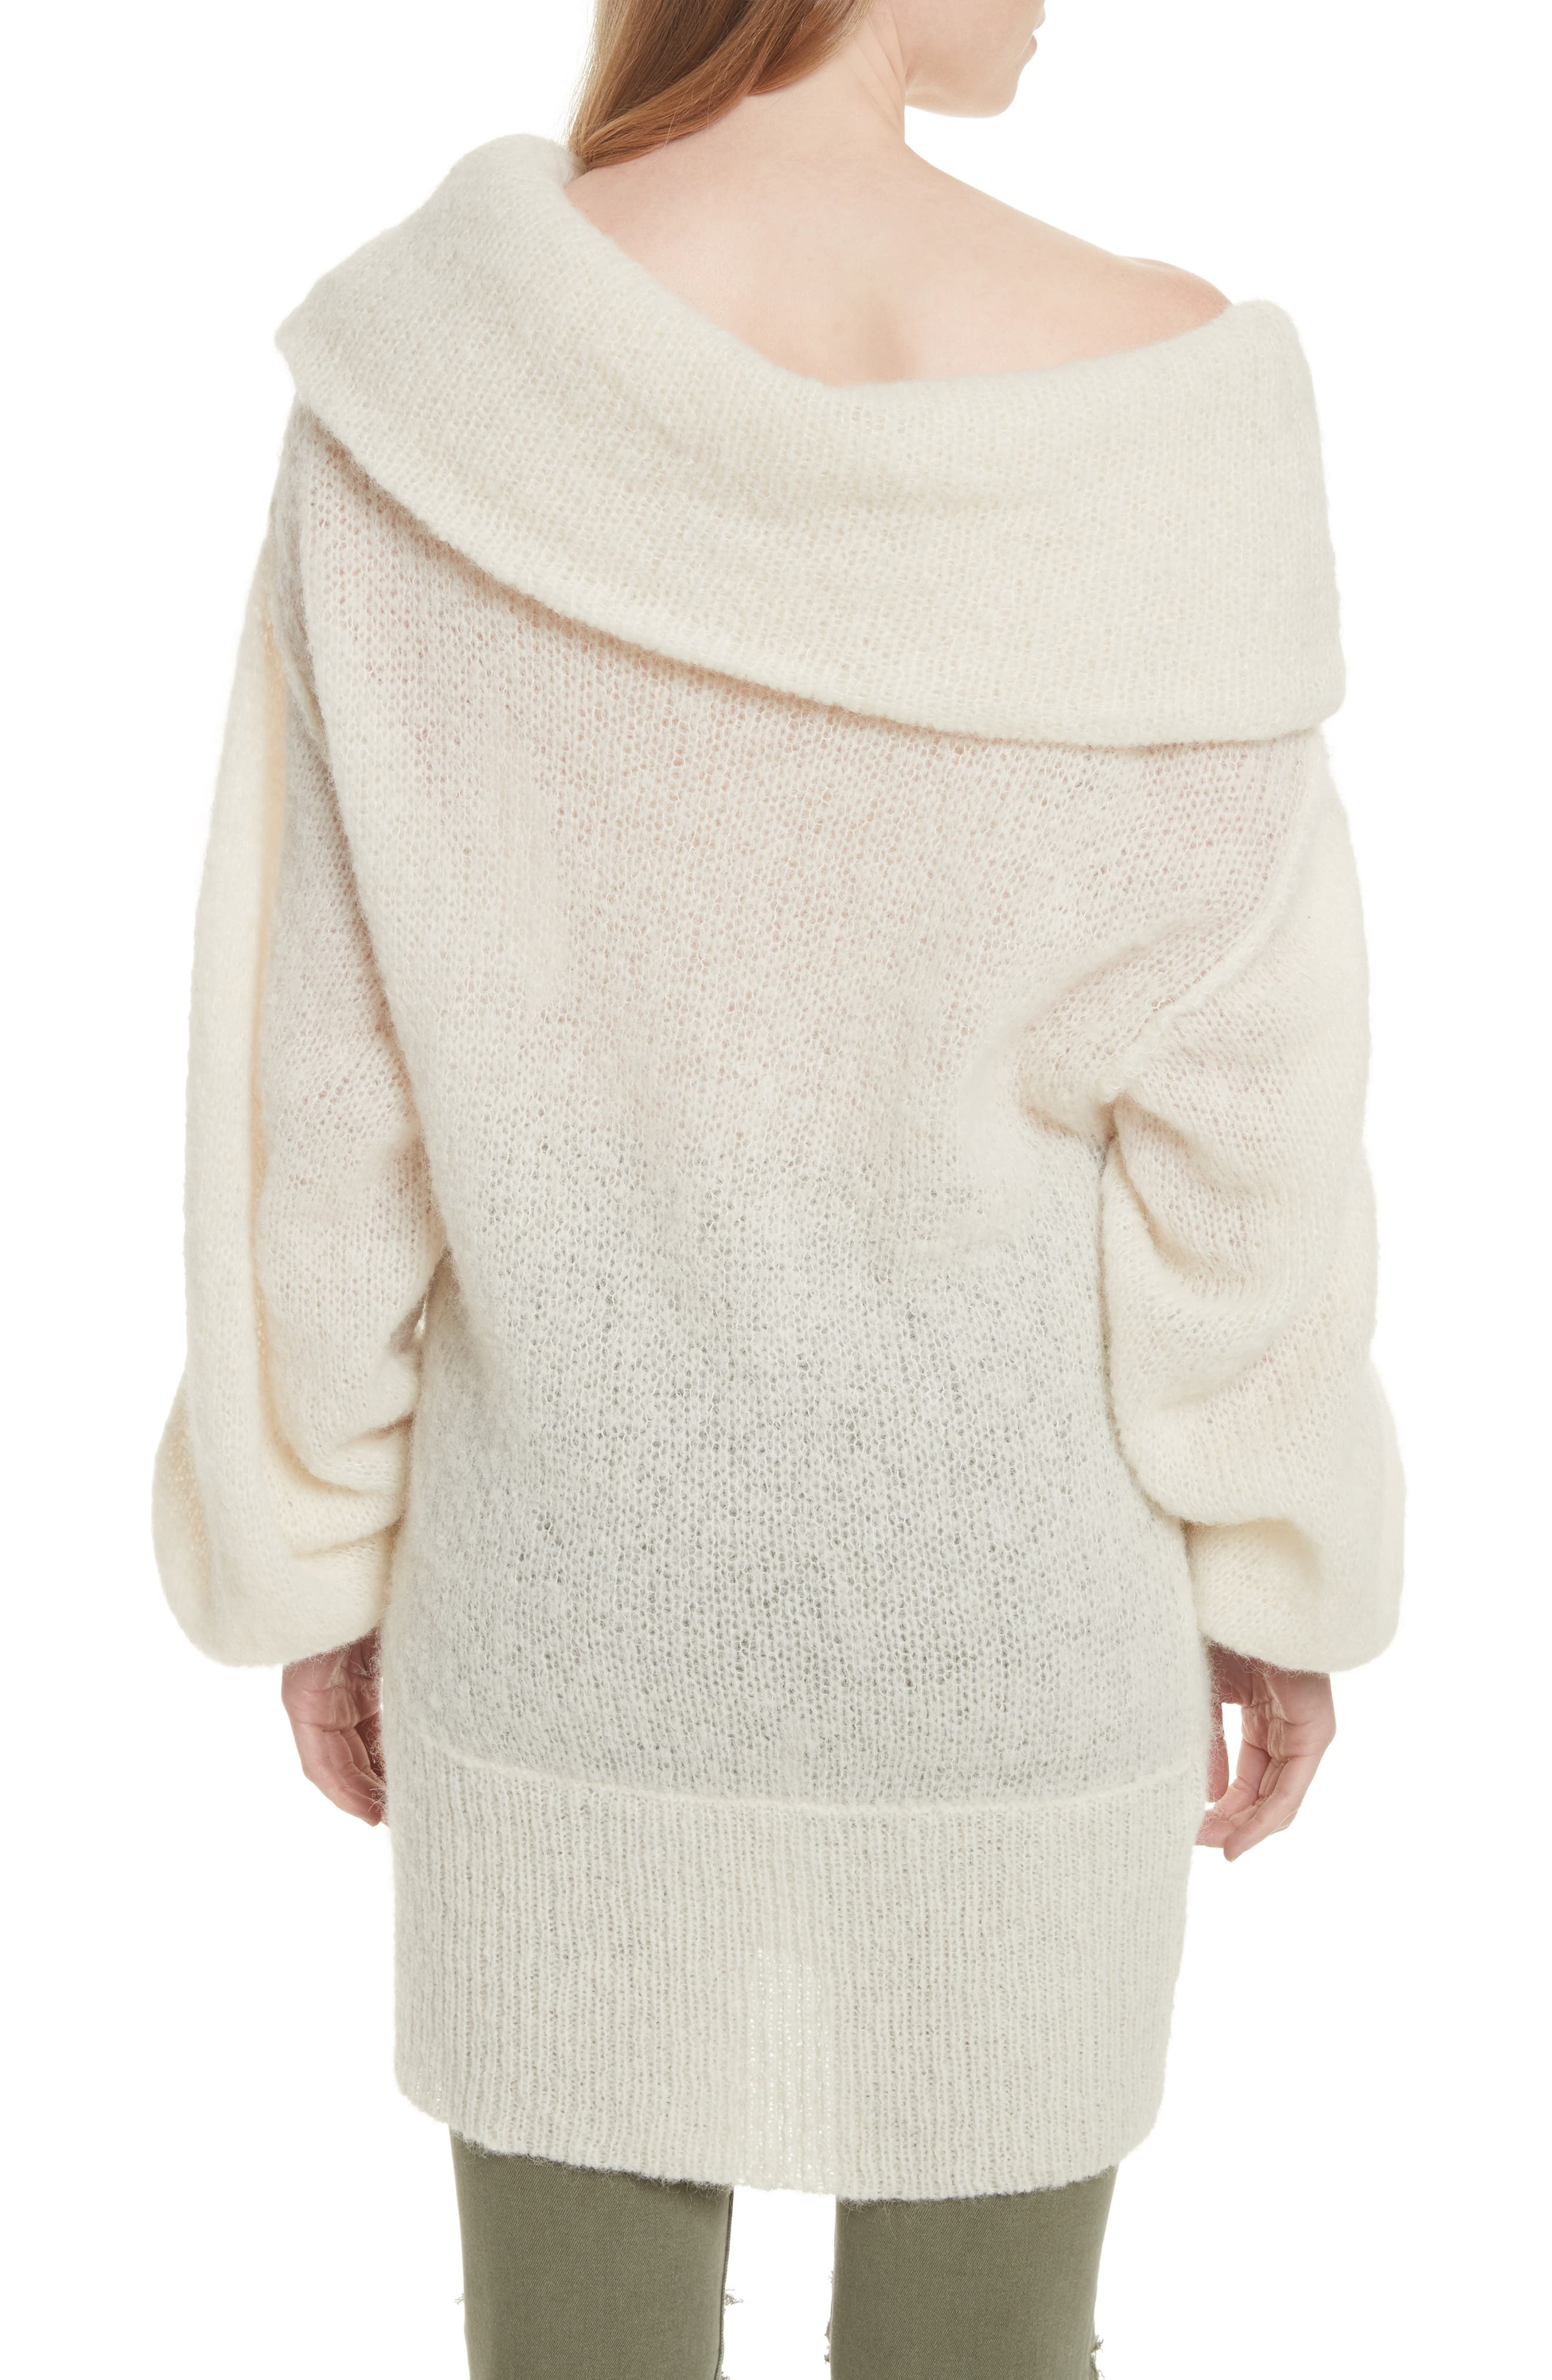 Ophelia Off the Shoulder Sweater,                             Alternate thumbnail 2, color,                             Ivory